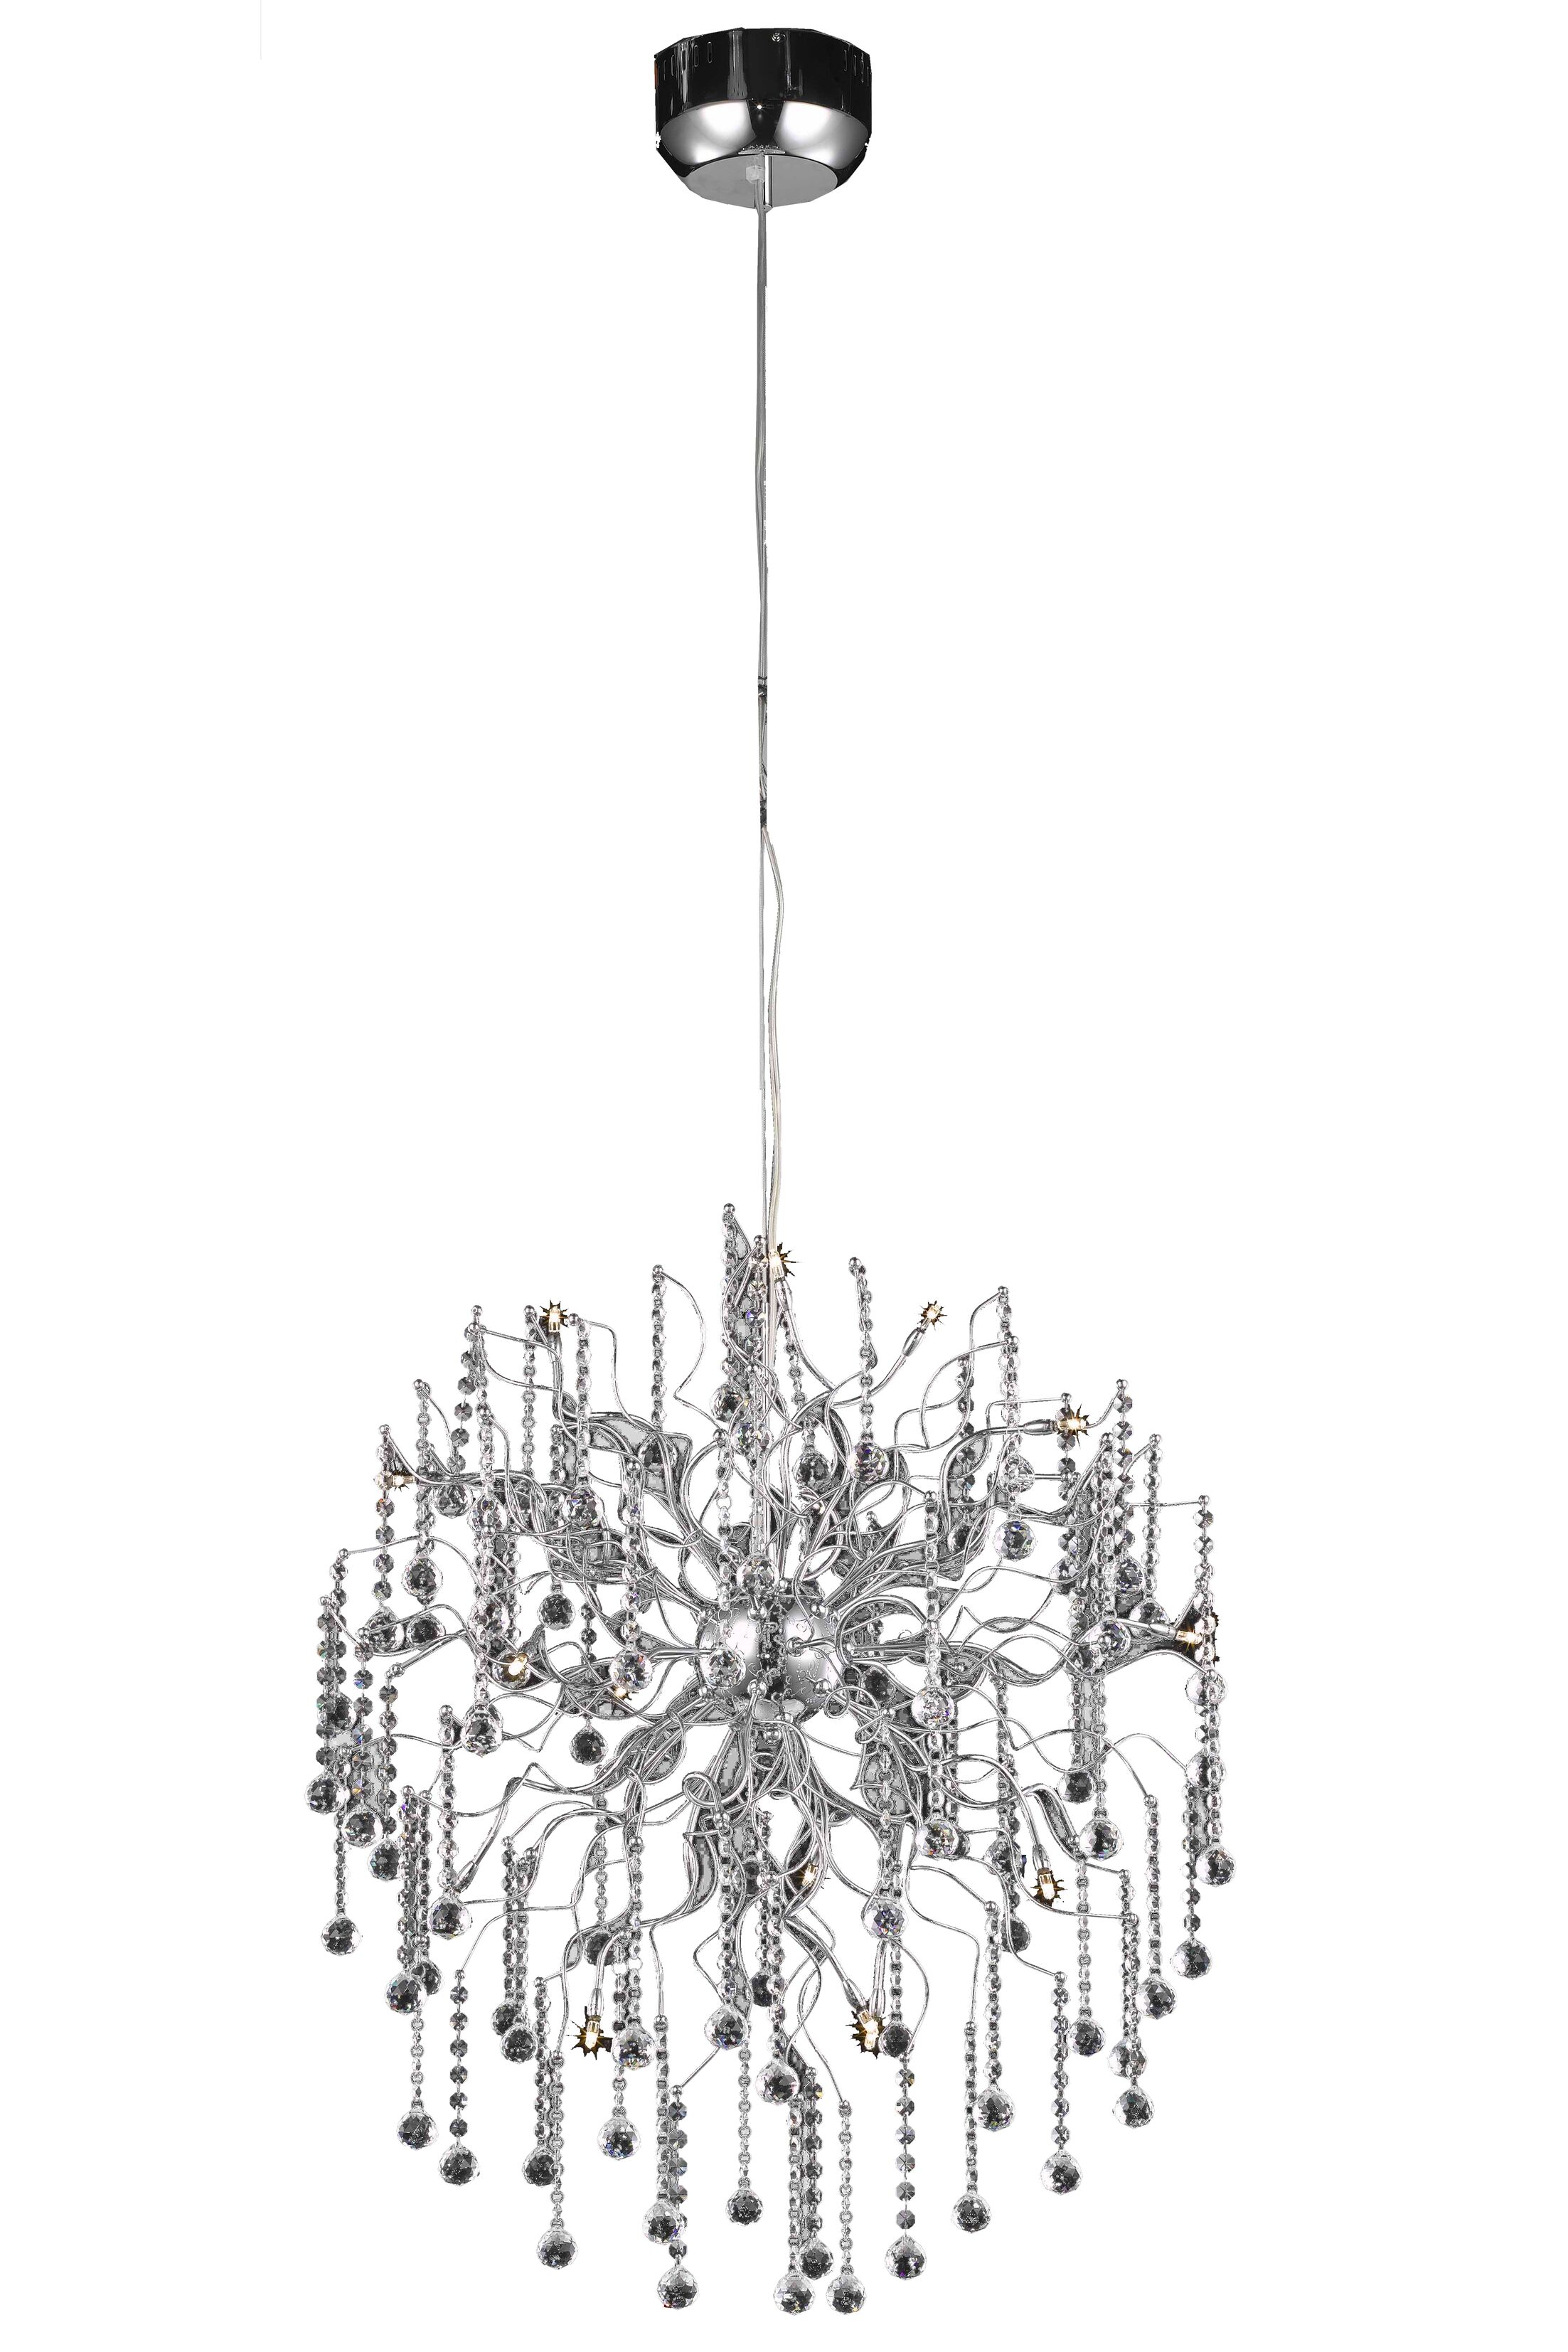 Verda 15-Light Sputnik Chandelier